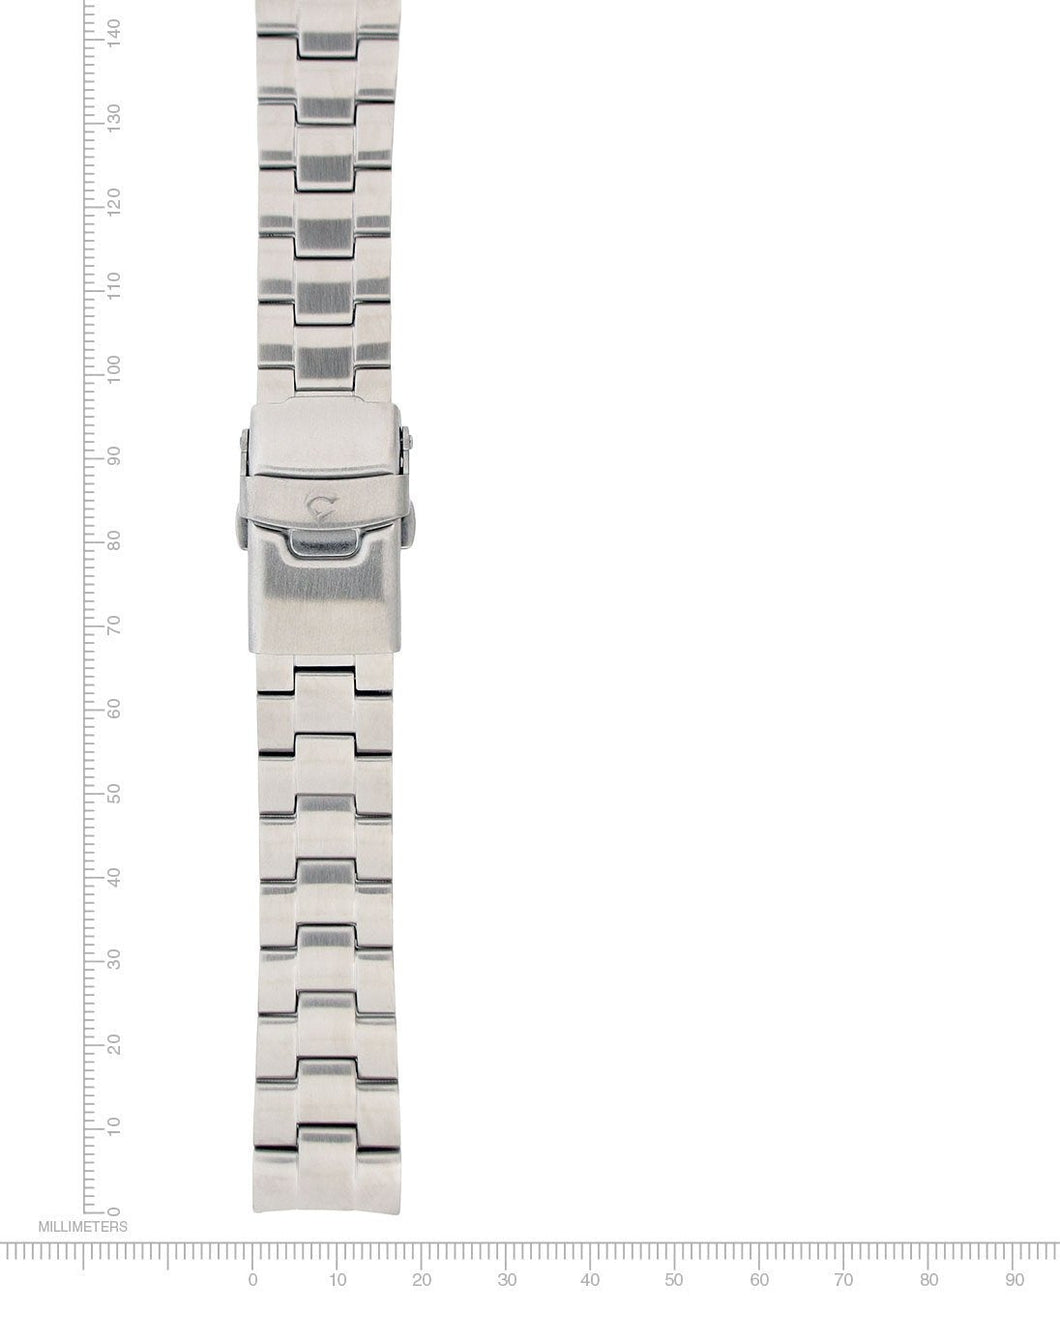 Logic Stainless Steel Bracelet - 18mm